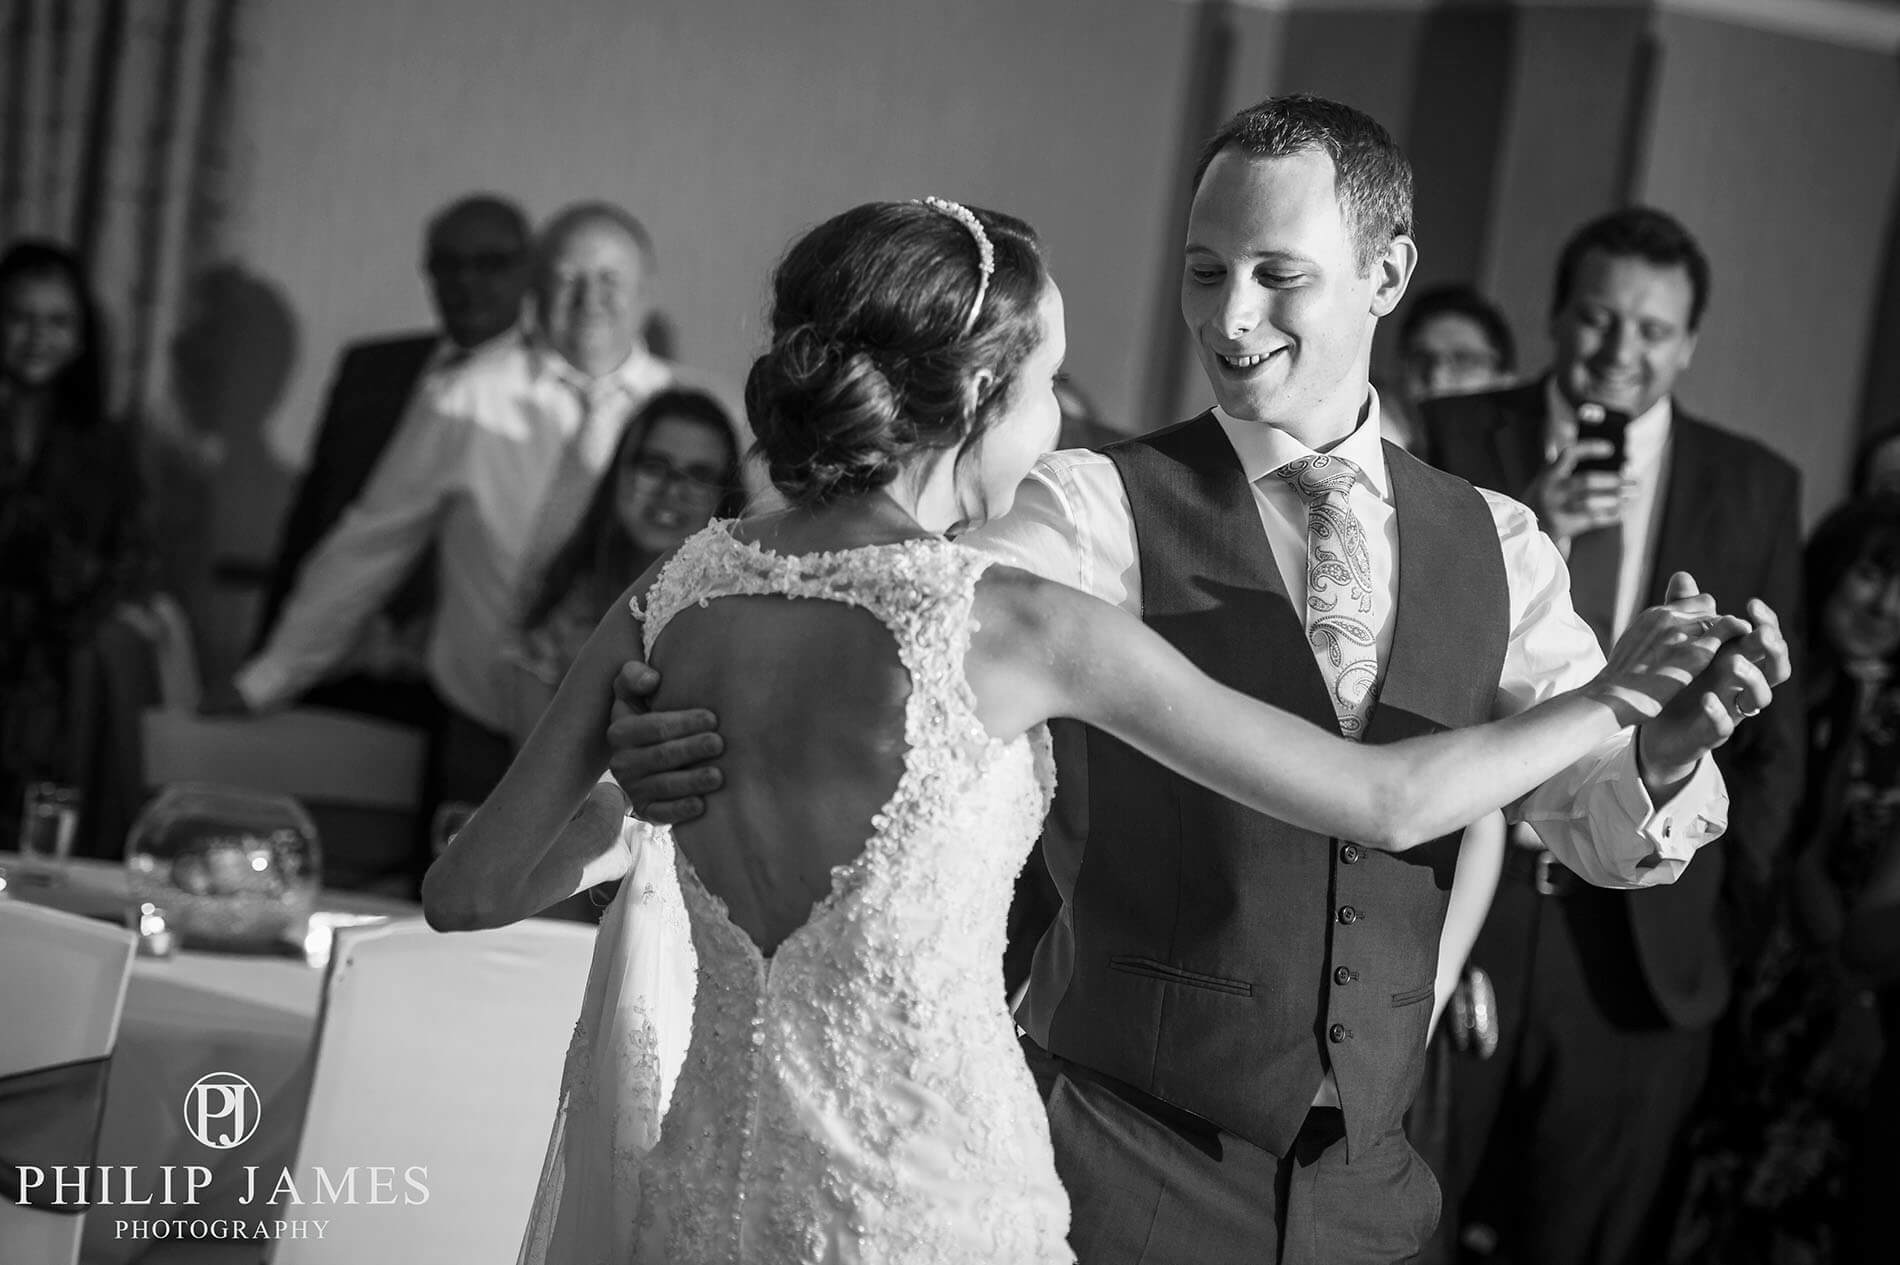 Philip James specializing in Wedding Photography Birmingham - Moments (129 of 170)